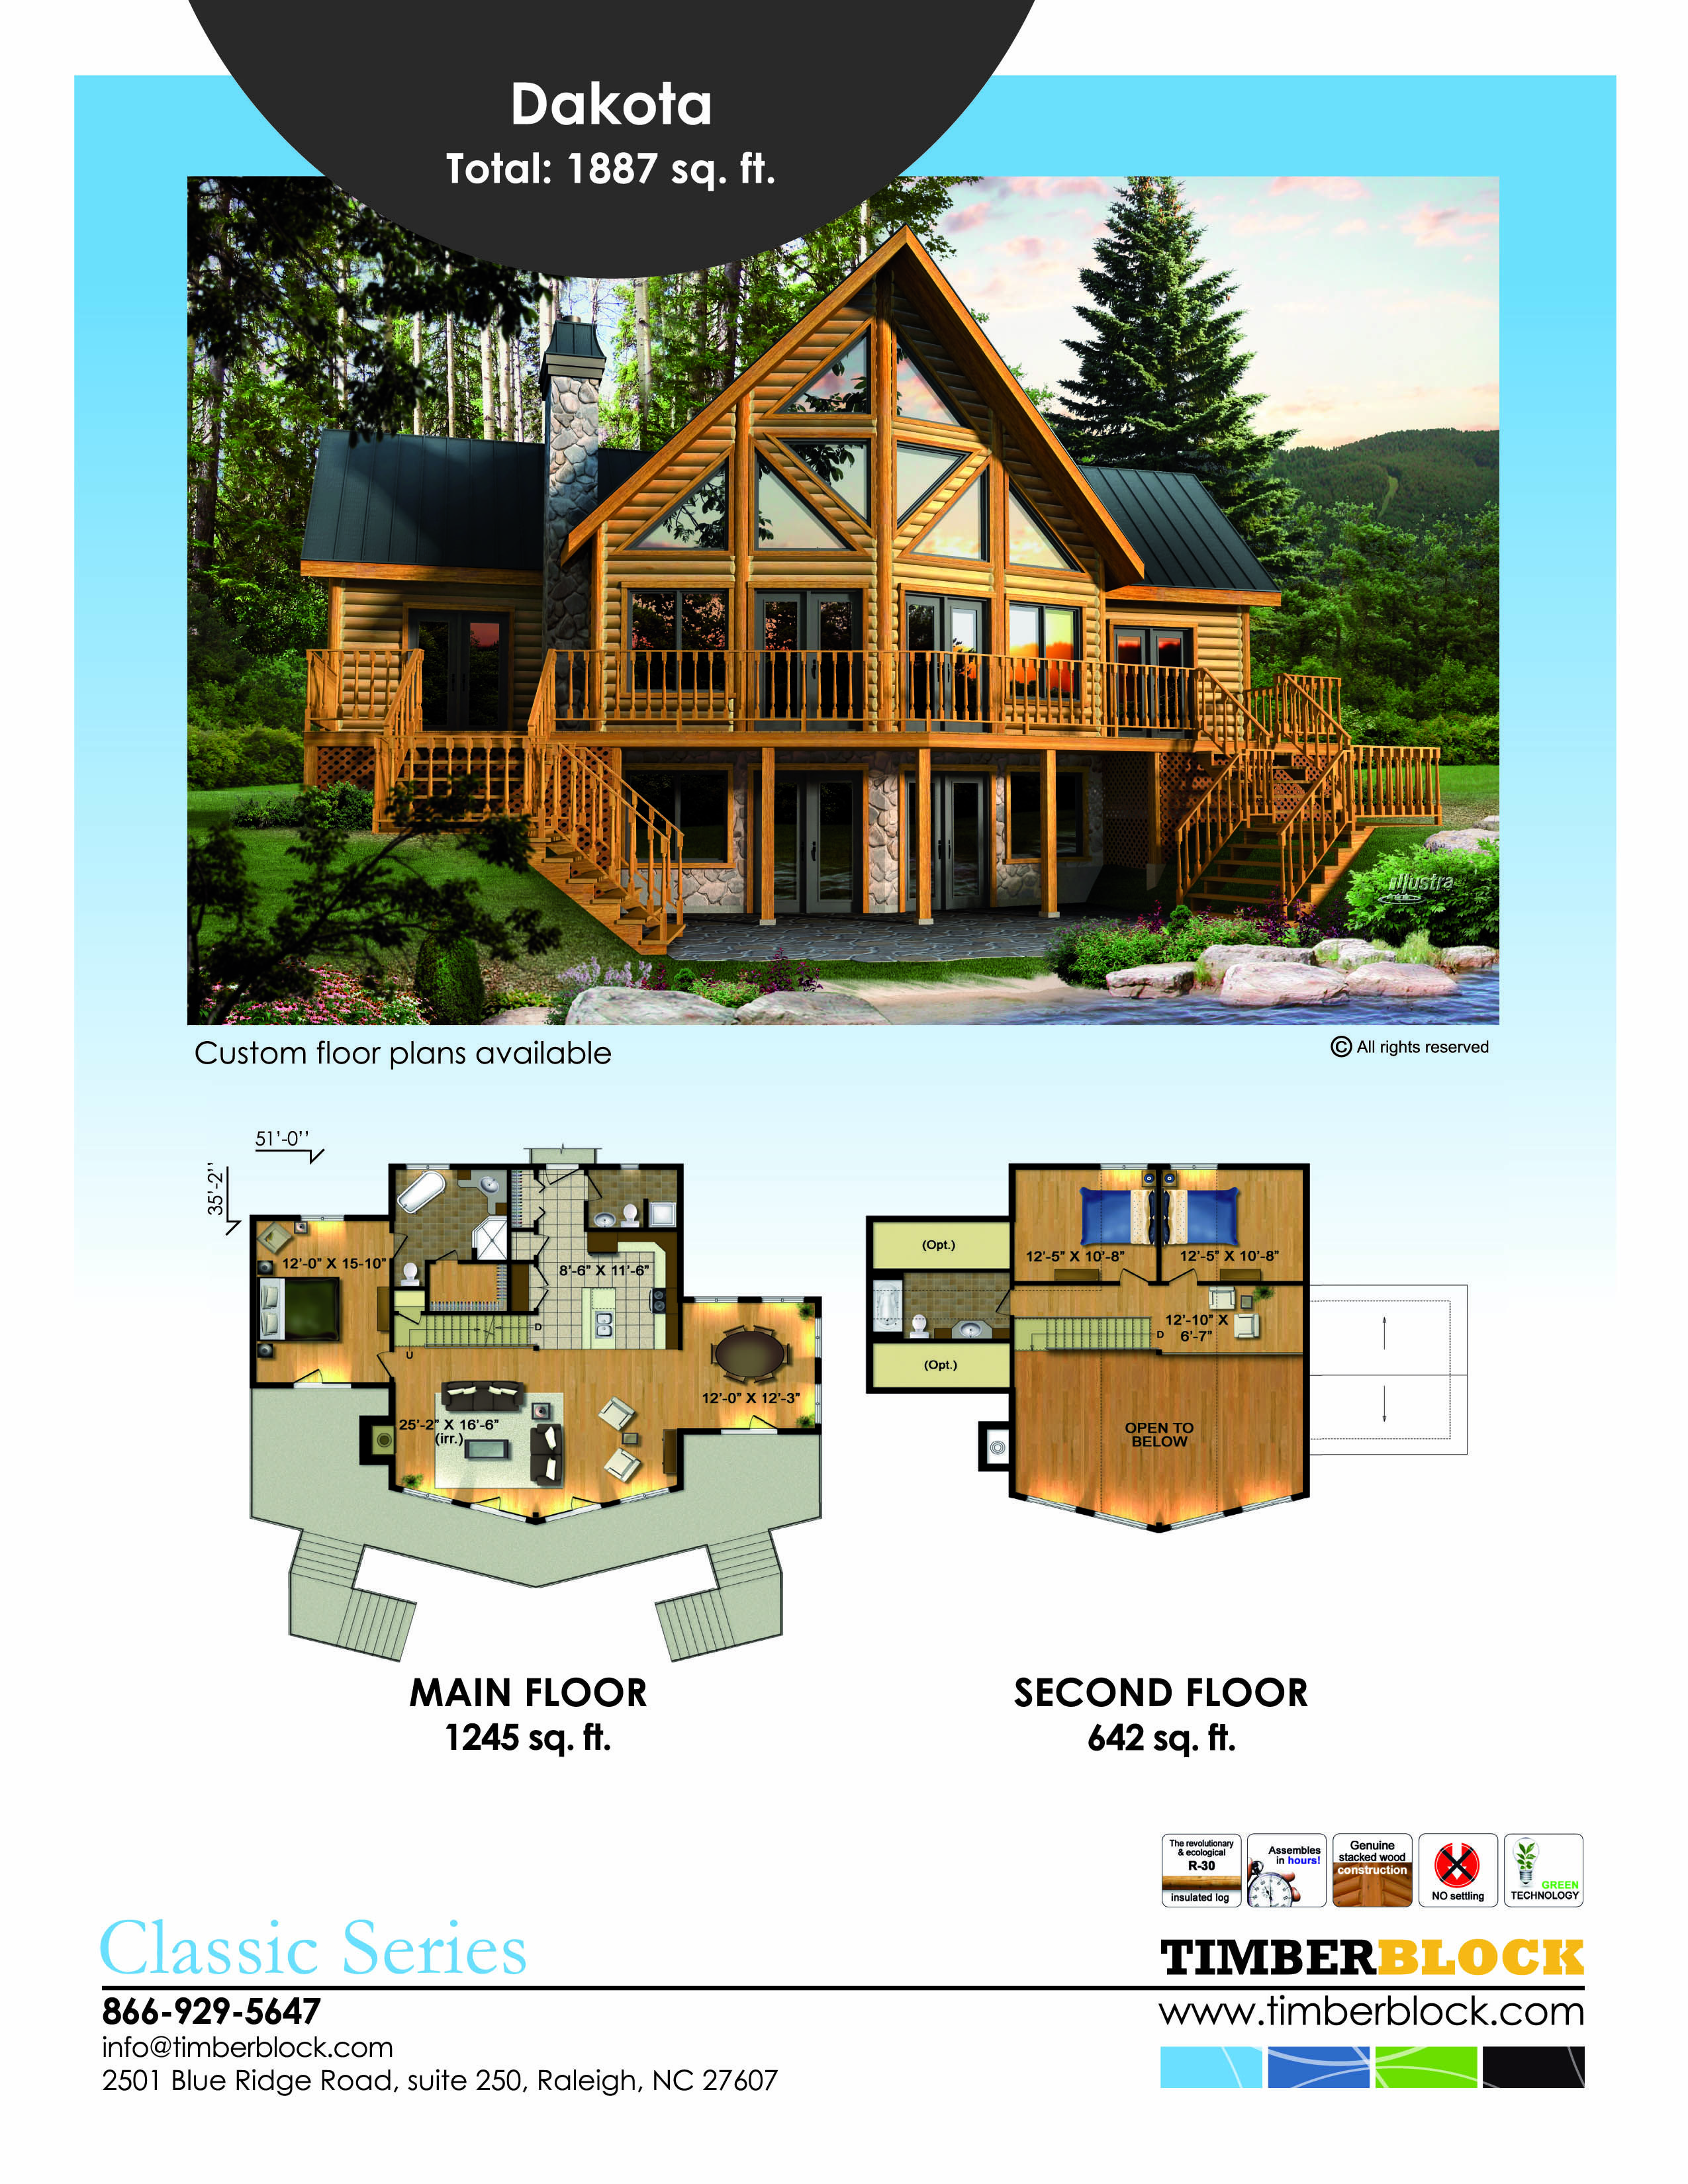 The Dakota Model In Timber Block S Classic Series Is A Favorite Here S The Floor Plan And Of Cou House Plan With Loft Log Cabin Floor Plans Lake House Plans